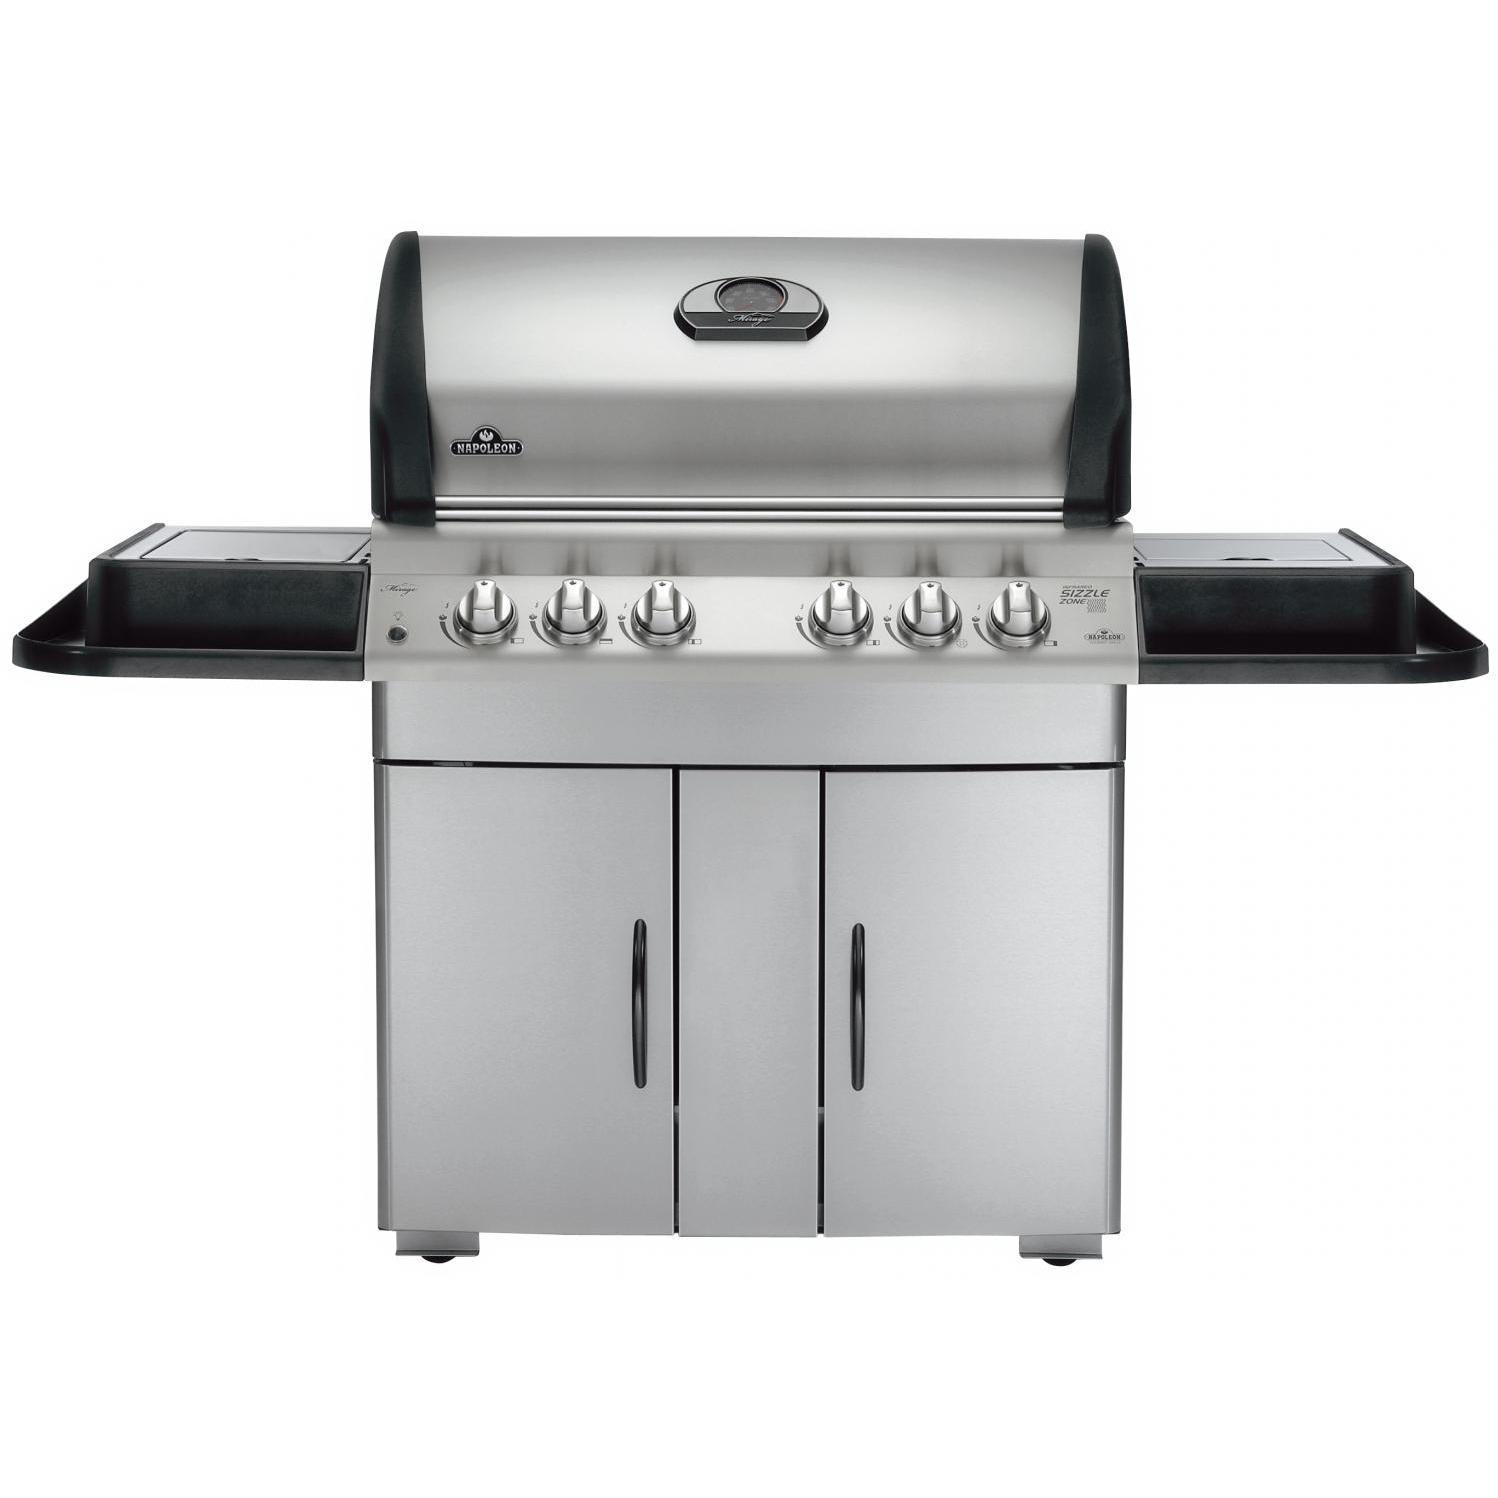 Mirage 605 Propane Gas Grill With Rear Infrared Burner, Sear Burner